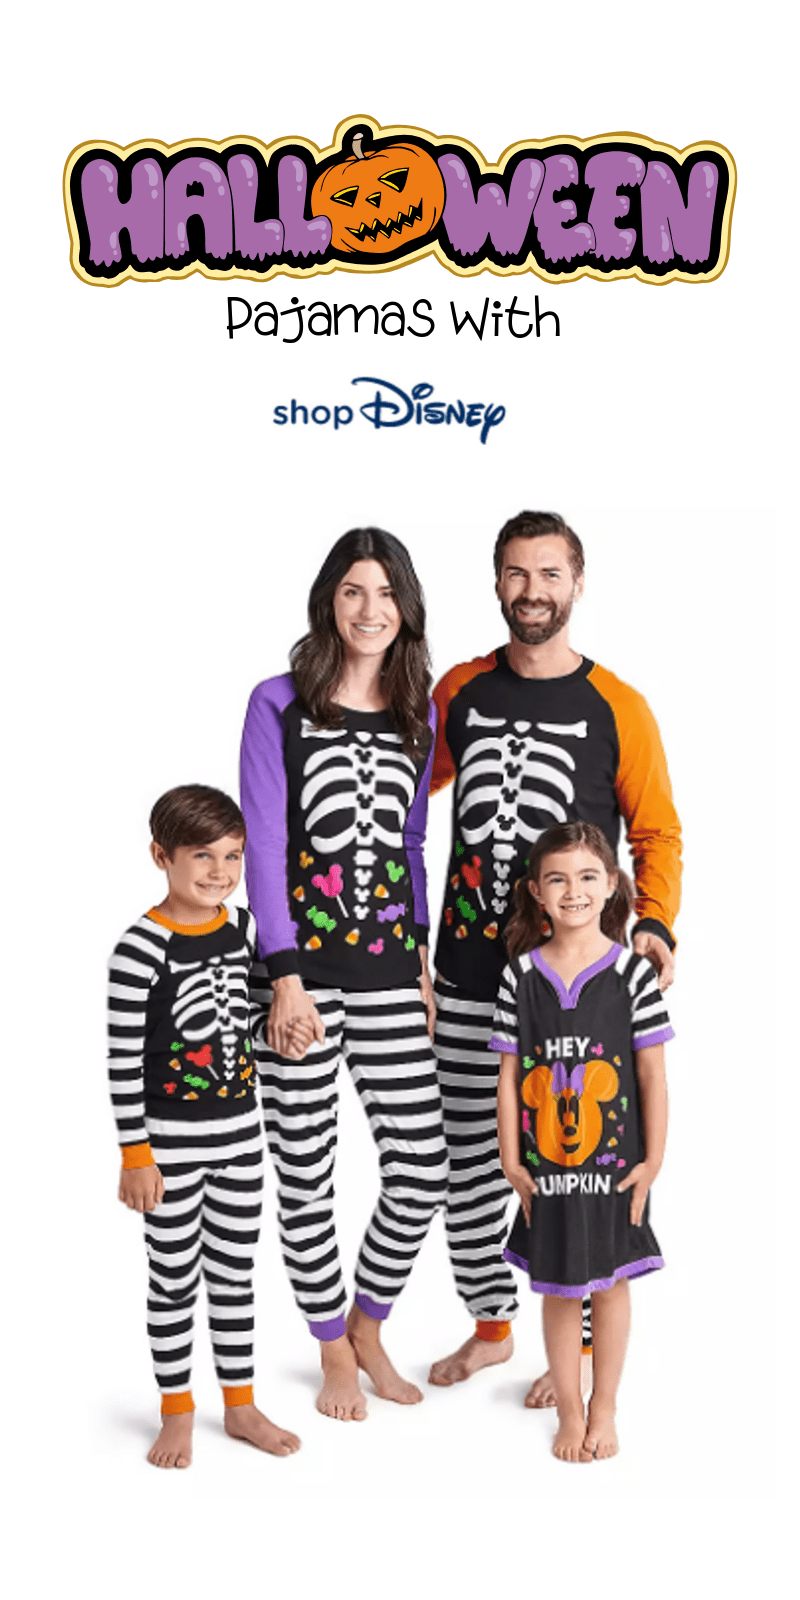 Here are the best in Disney Halloween Pajamas for the whole family. This fantastic post rounds up the spooky and adorableness of ShopDisney's Halloween Collection for 2019.  #ad @ShopDisney #halloween2019 #disney #disneylove #disneymagic #waltdisney #disneyprincess #mickeymouse #disneyphoto #disneylife #disneyfan #mickey #disneyaddict #disnerd #starwars #halloween